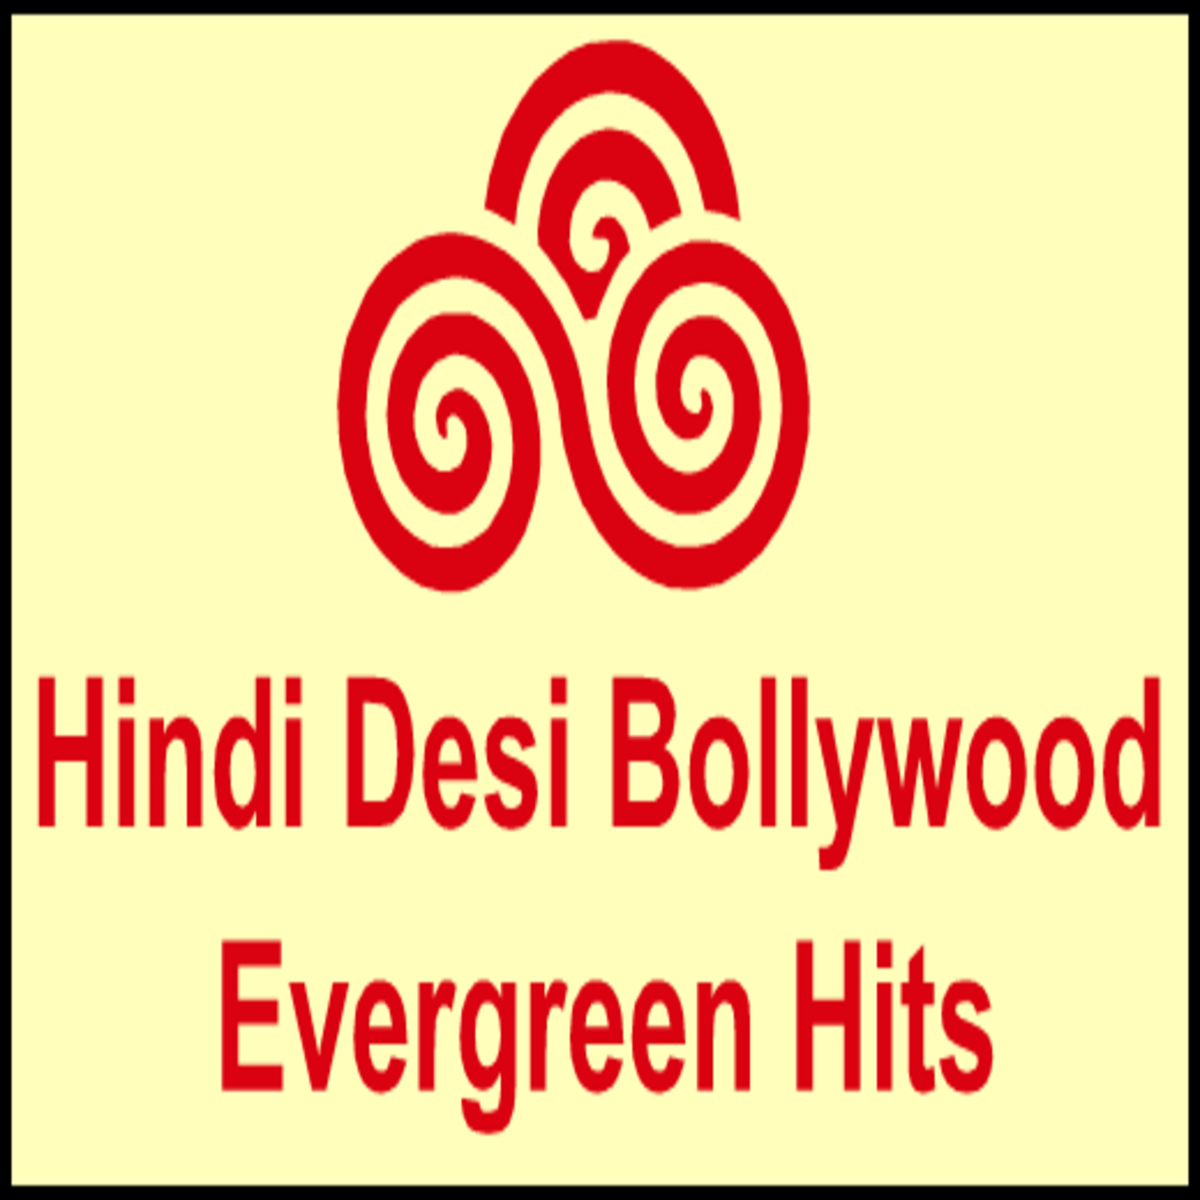 Hindi Desi Bollywood Evergreen Hits - Channel 02